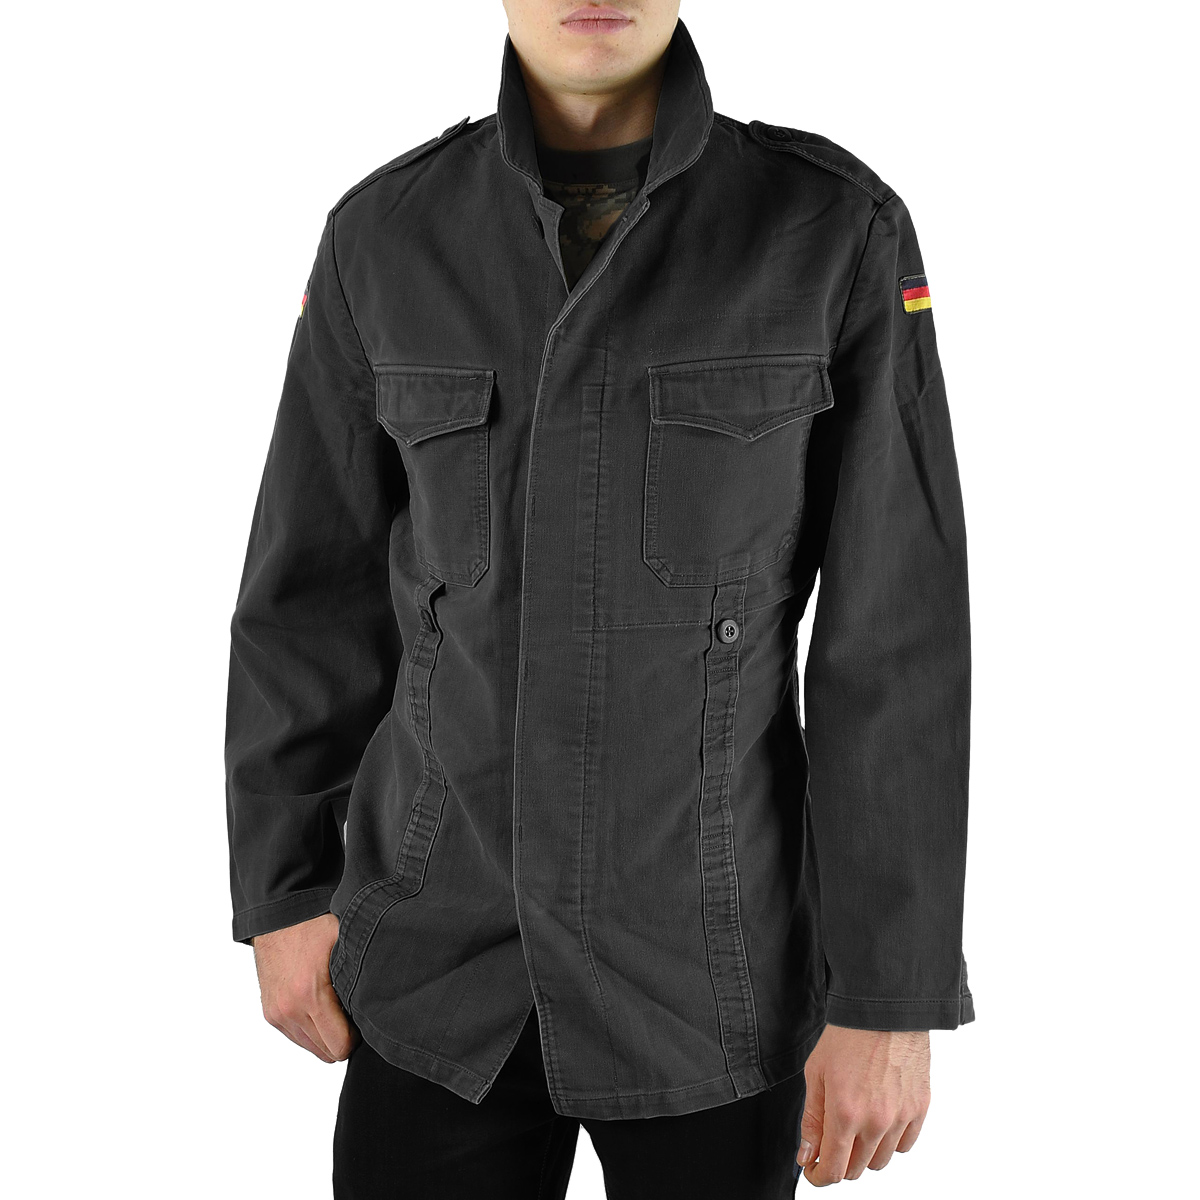 German army parka blue